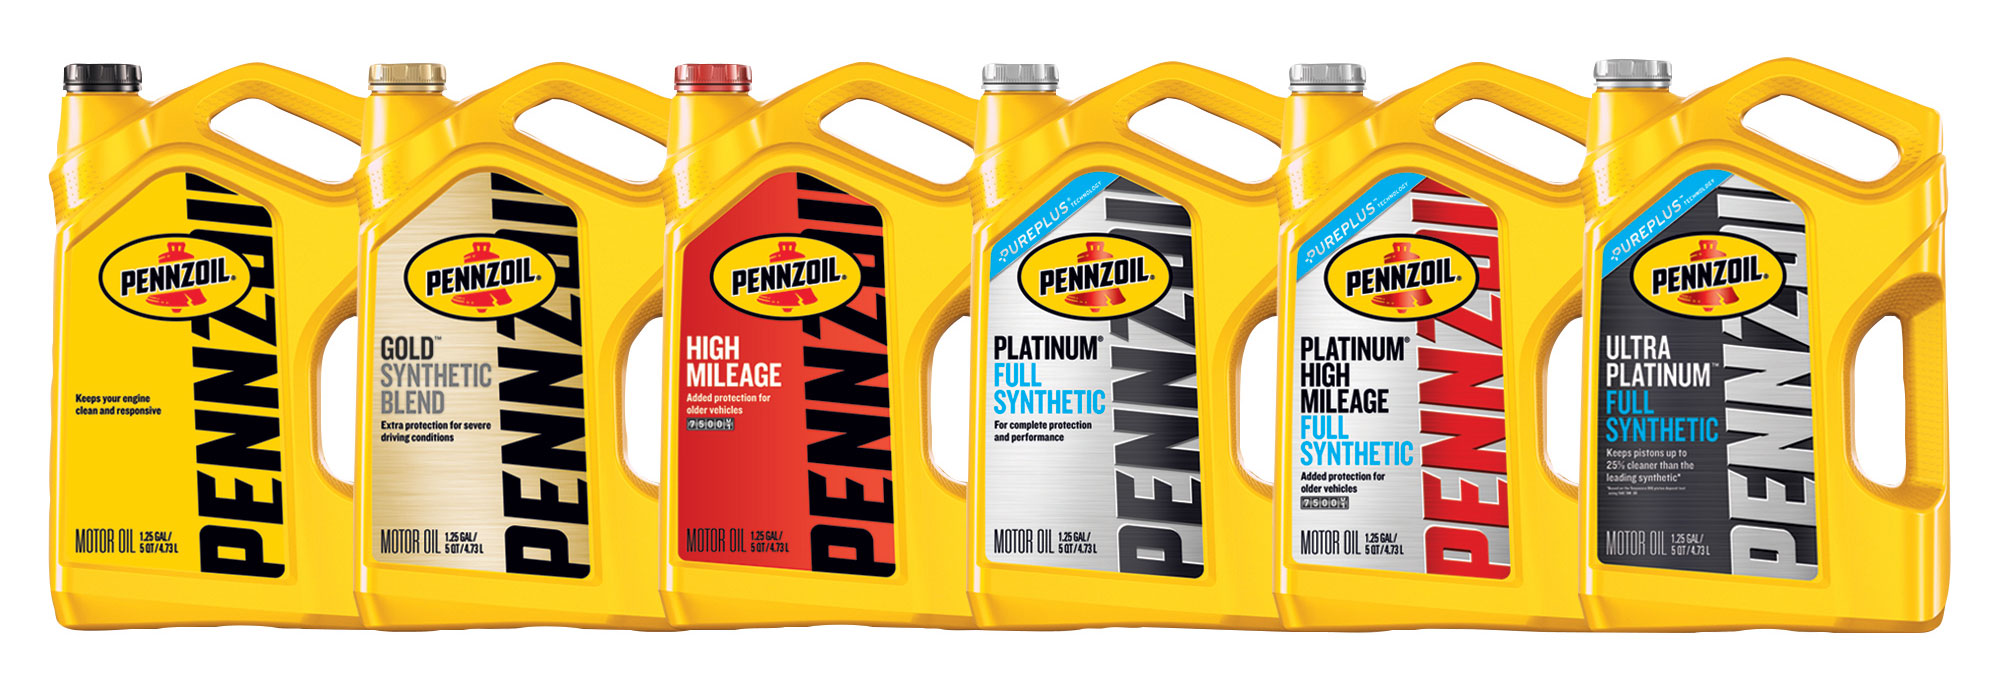 products_pennzoil_crop.jpg